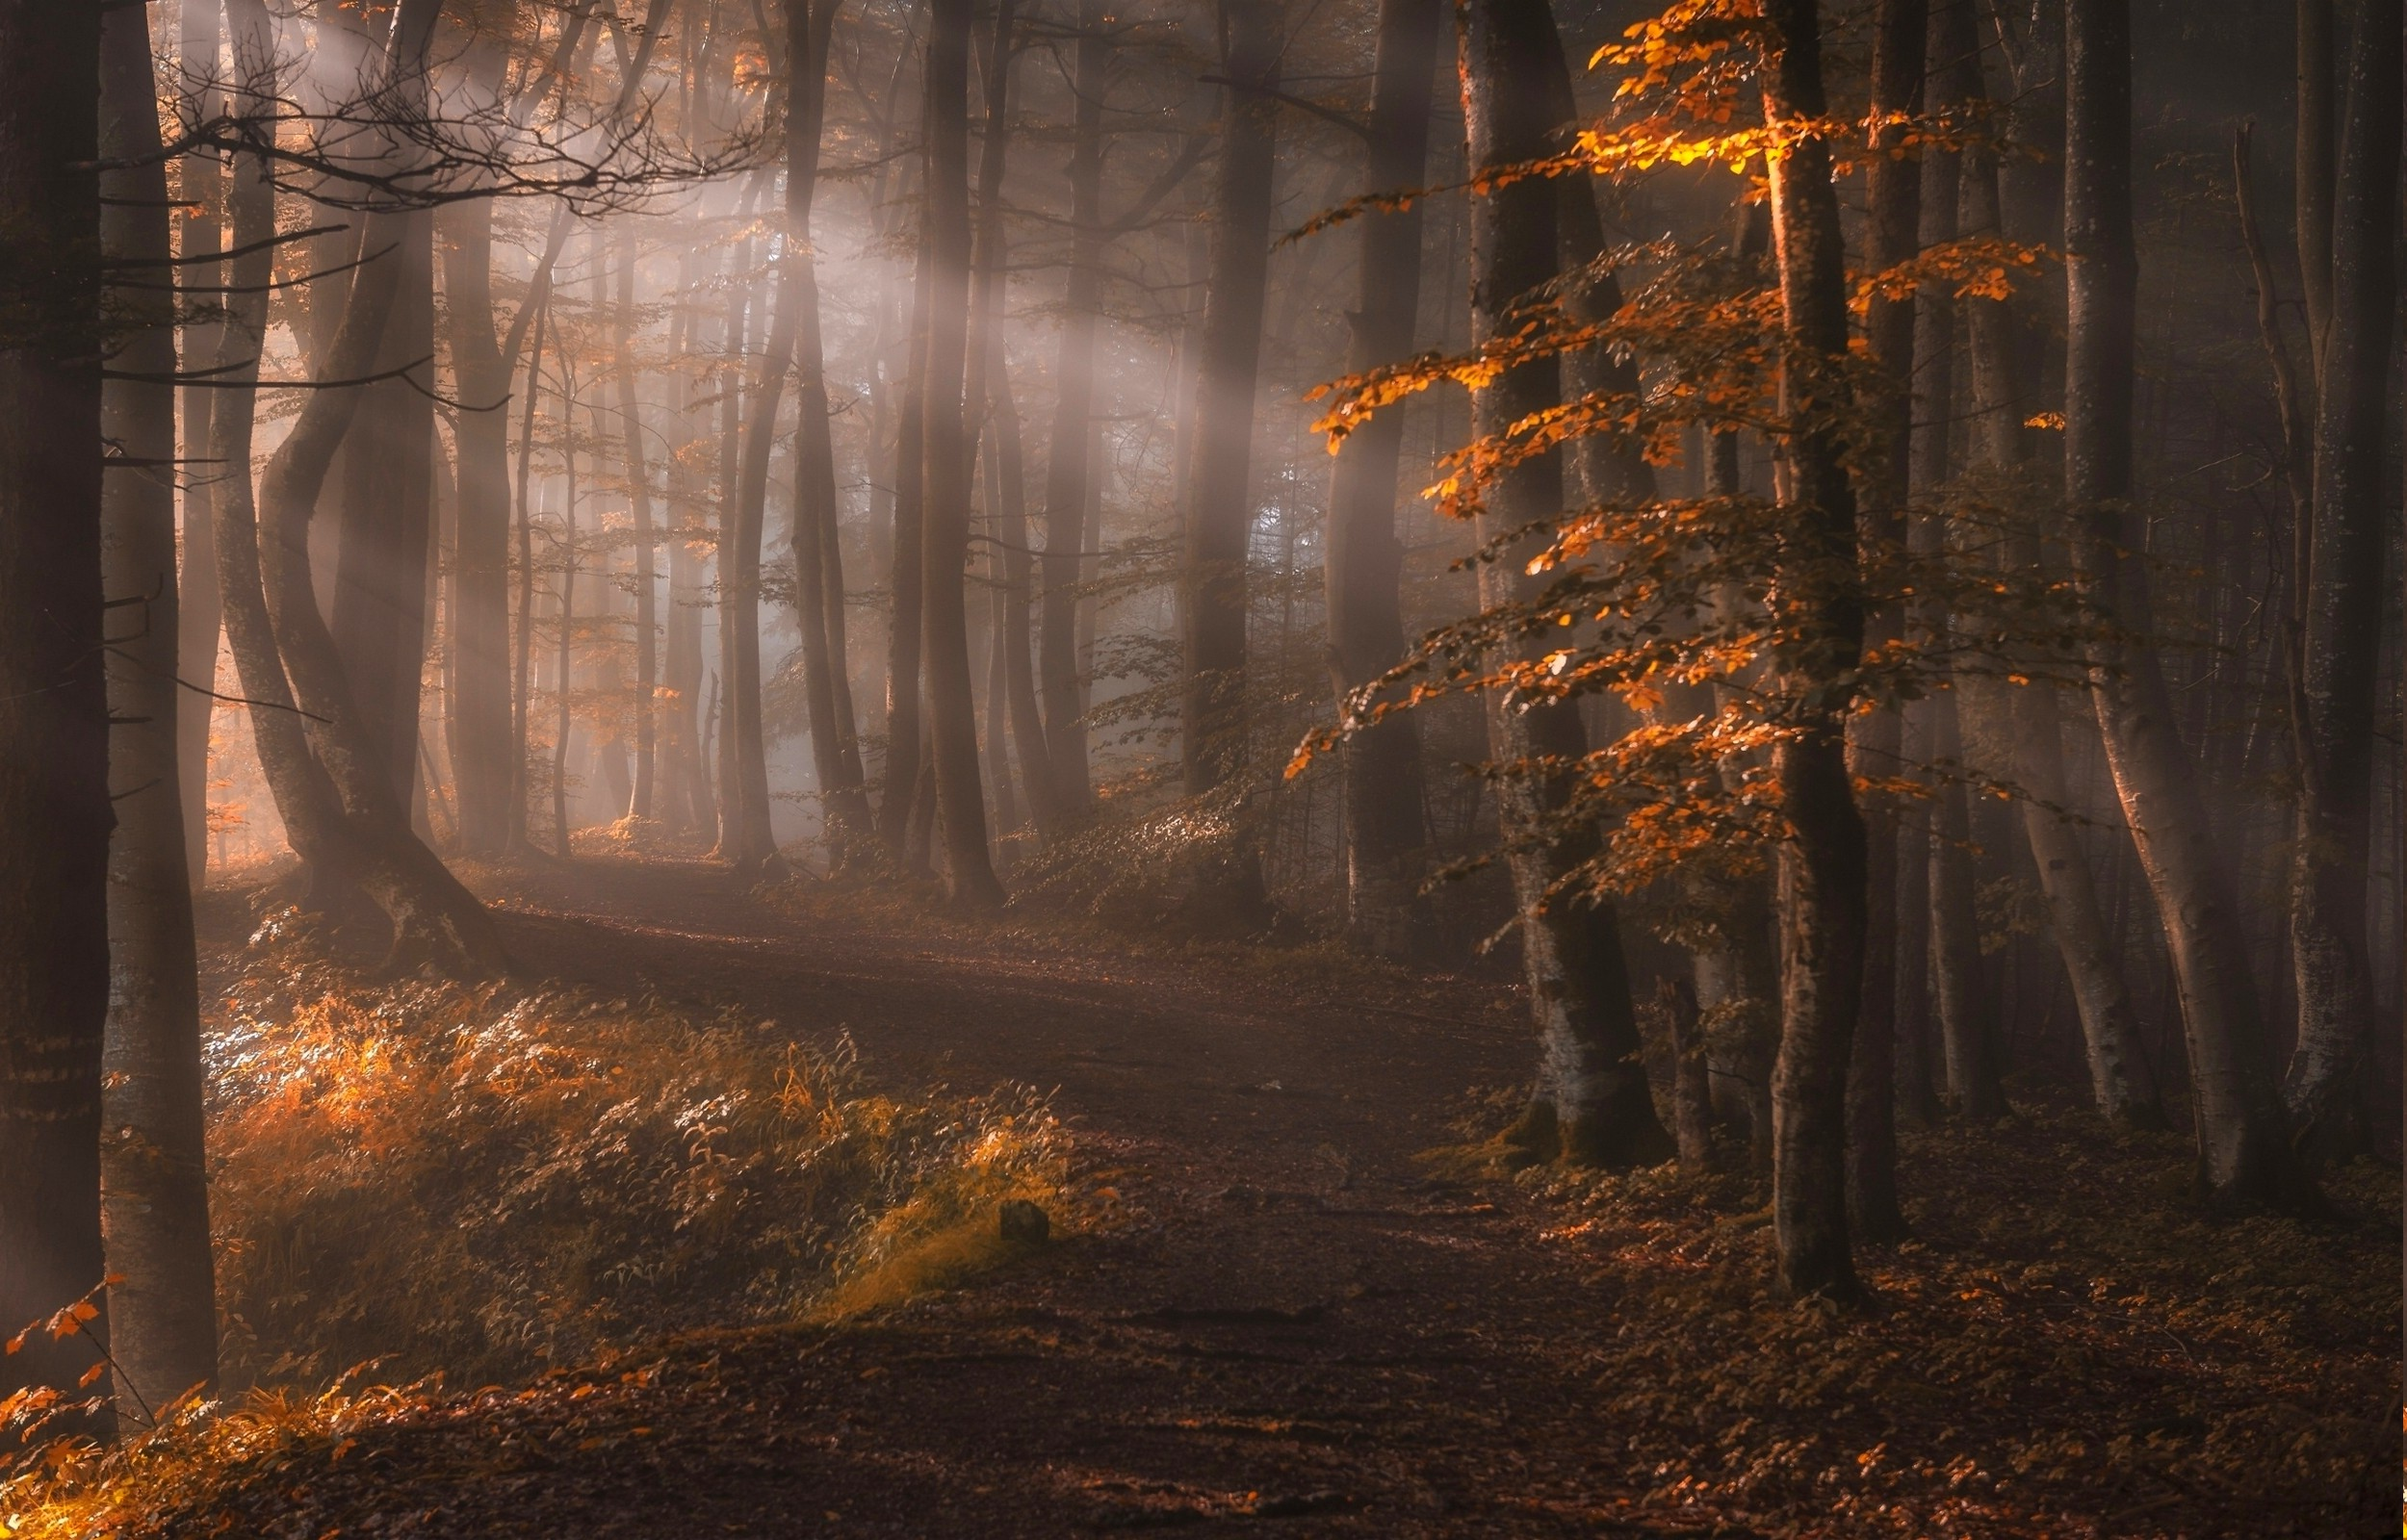 Fall Desktop Wallpaper 2500x1600 Nature Landscape Sun Rays Forest Path Leaves Trees